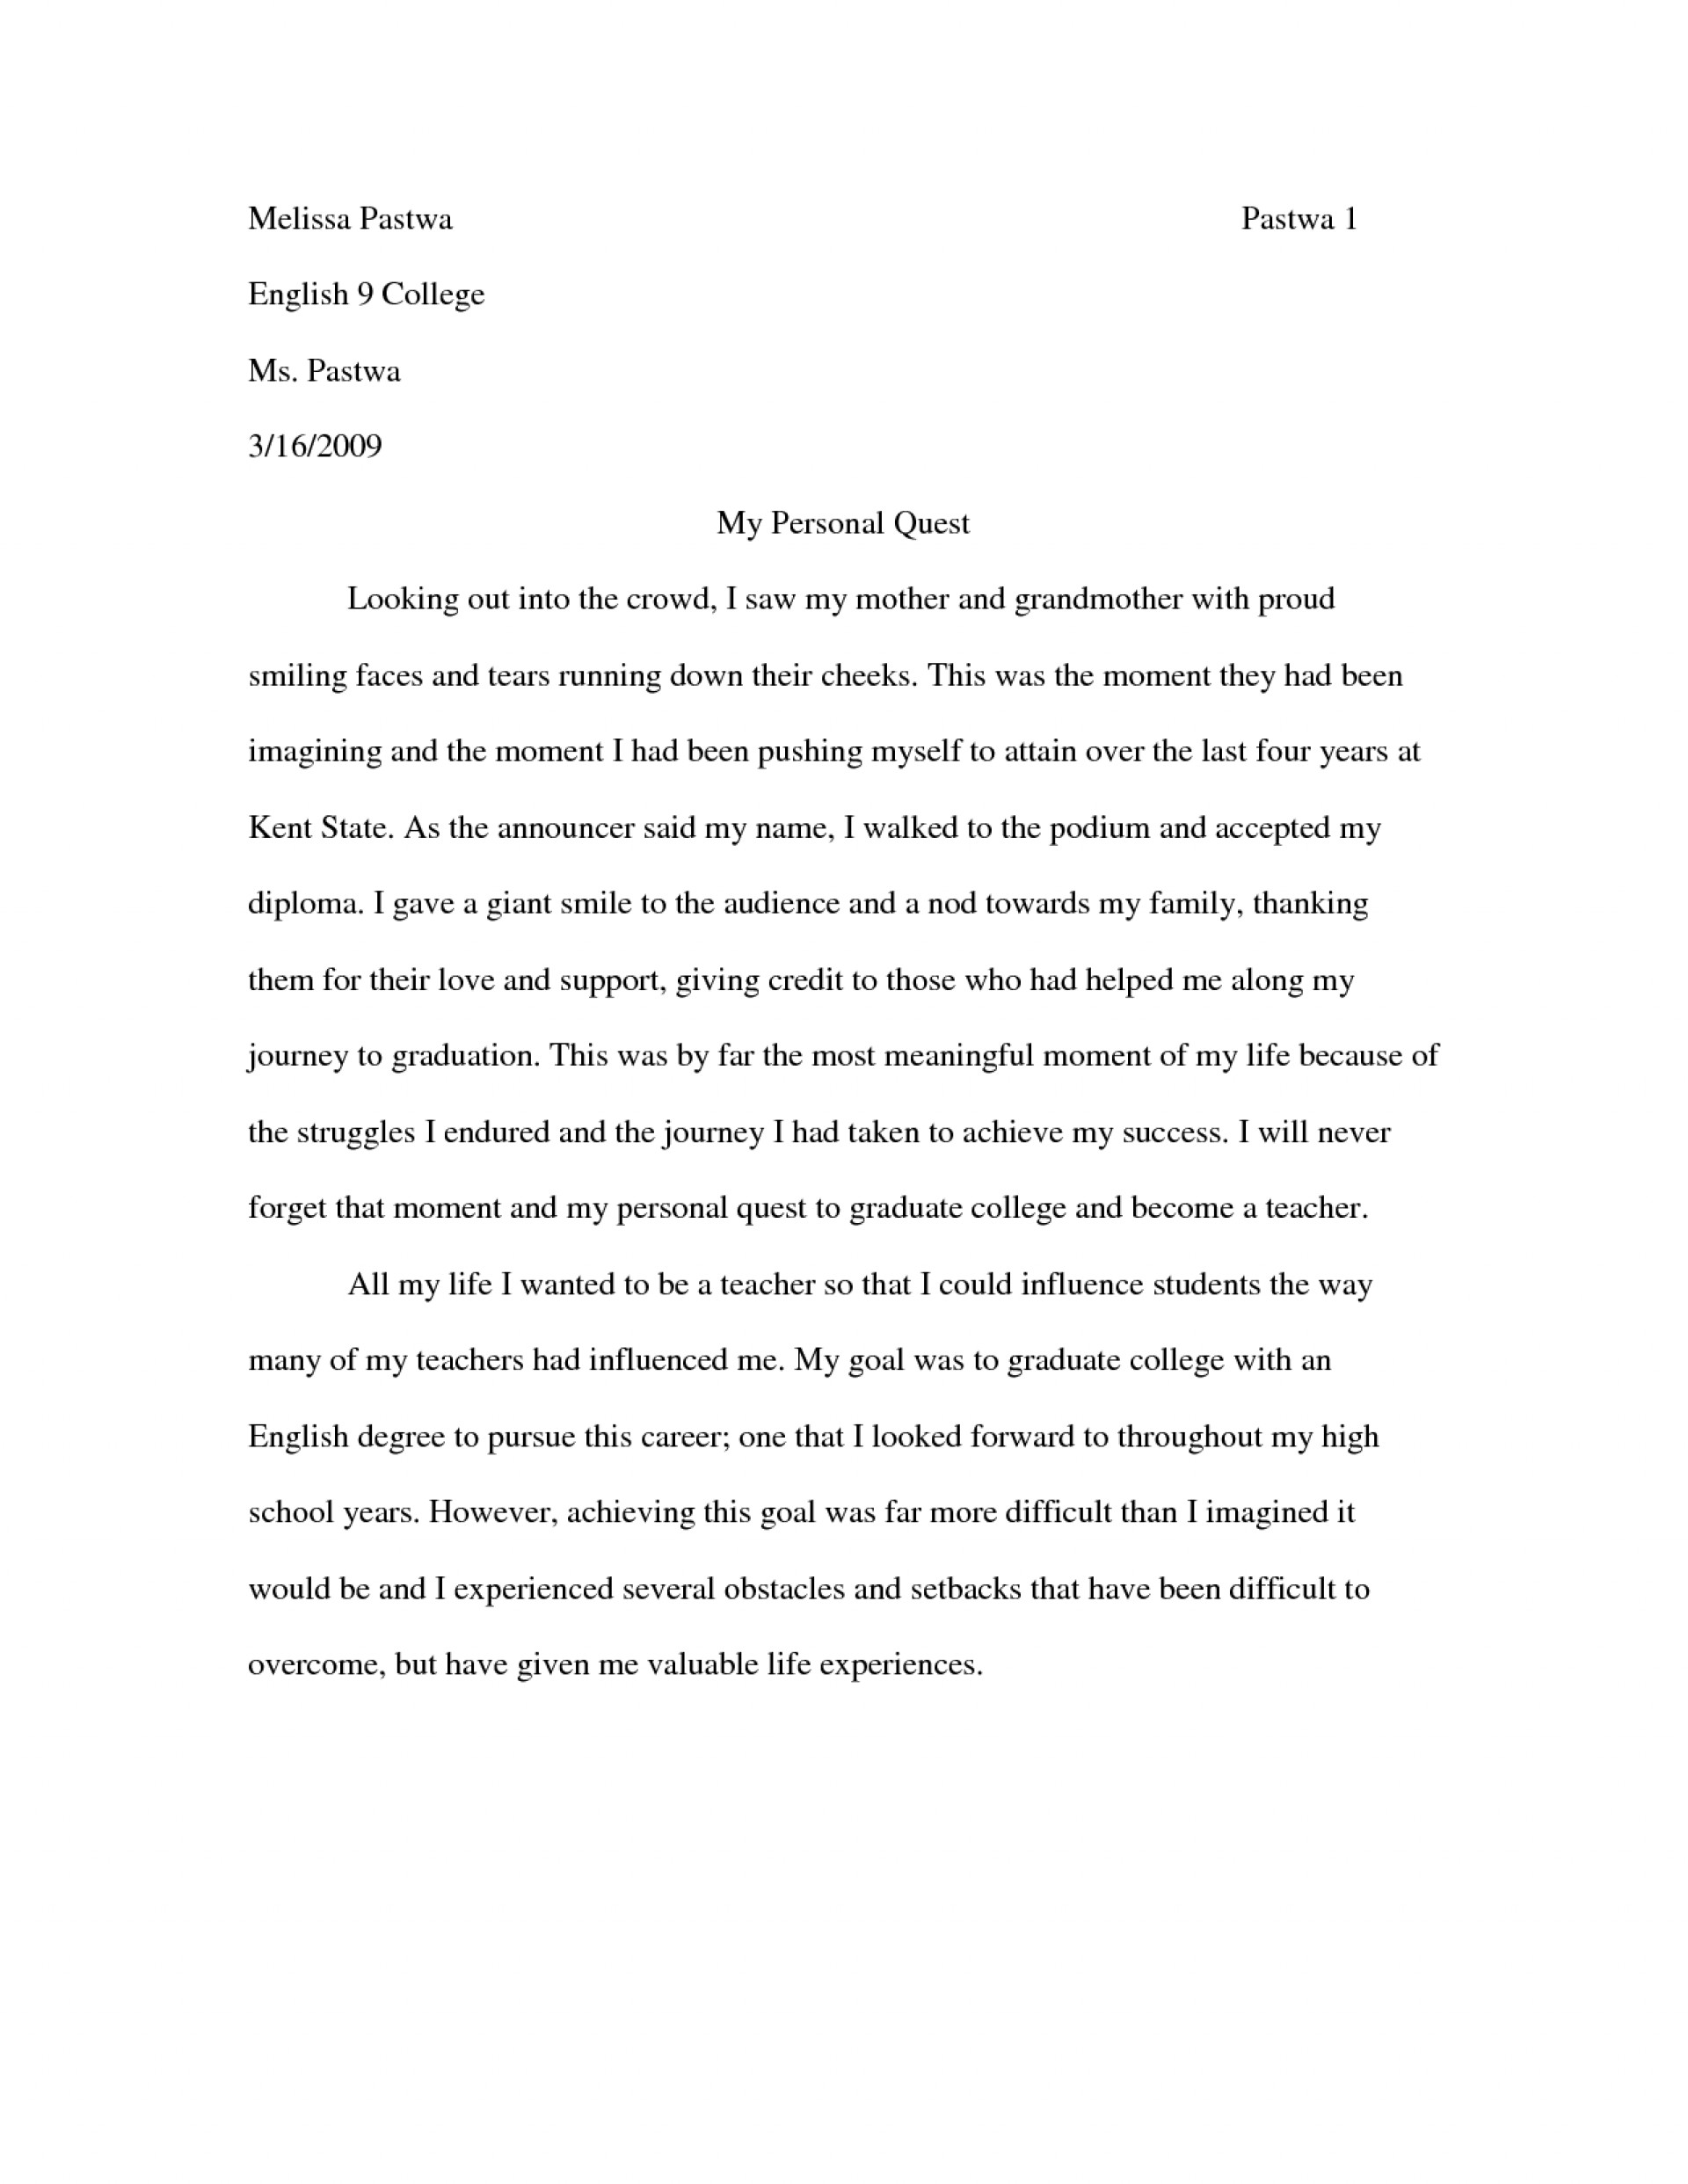 009 Writing Narrative Essay Example Dialogue Of L Amazing A Pdf Sample High School Personal Outline 1920